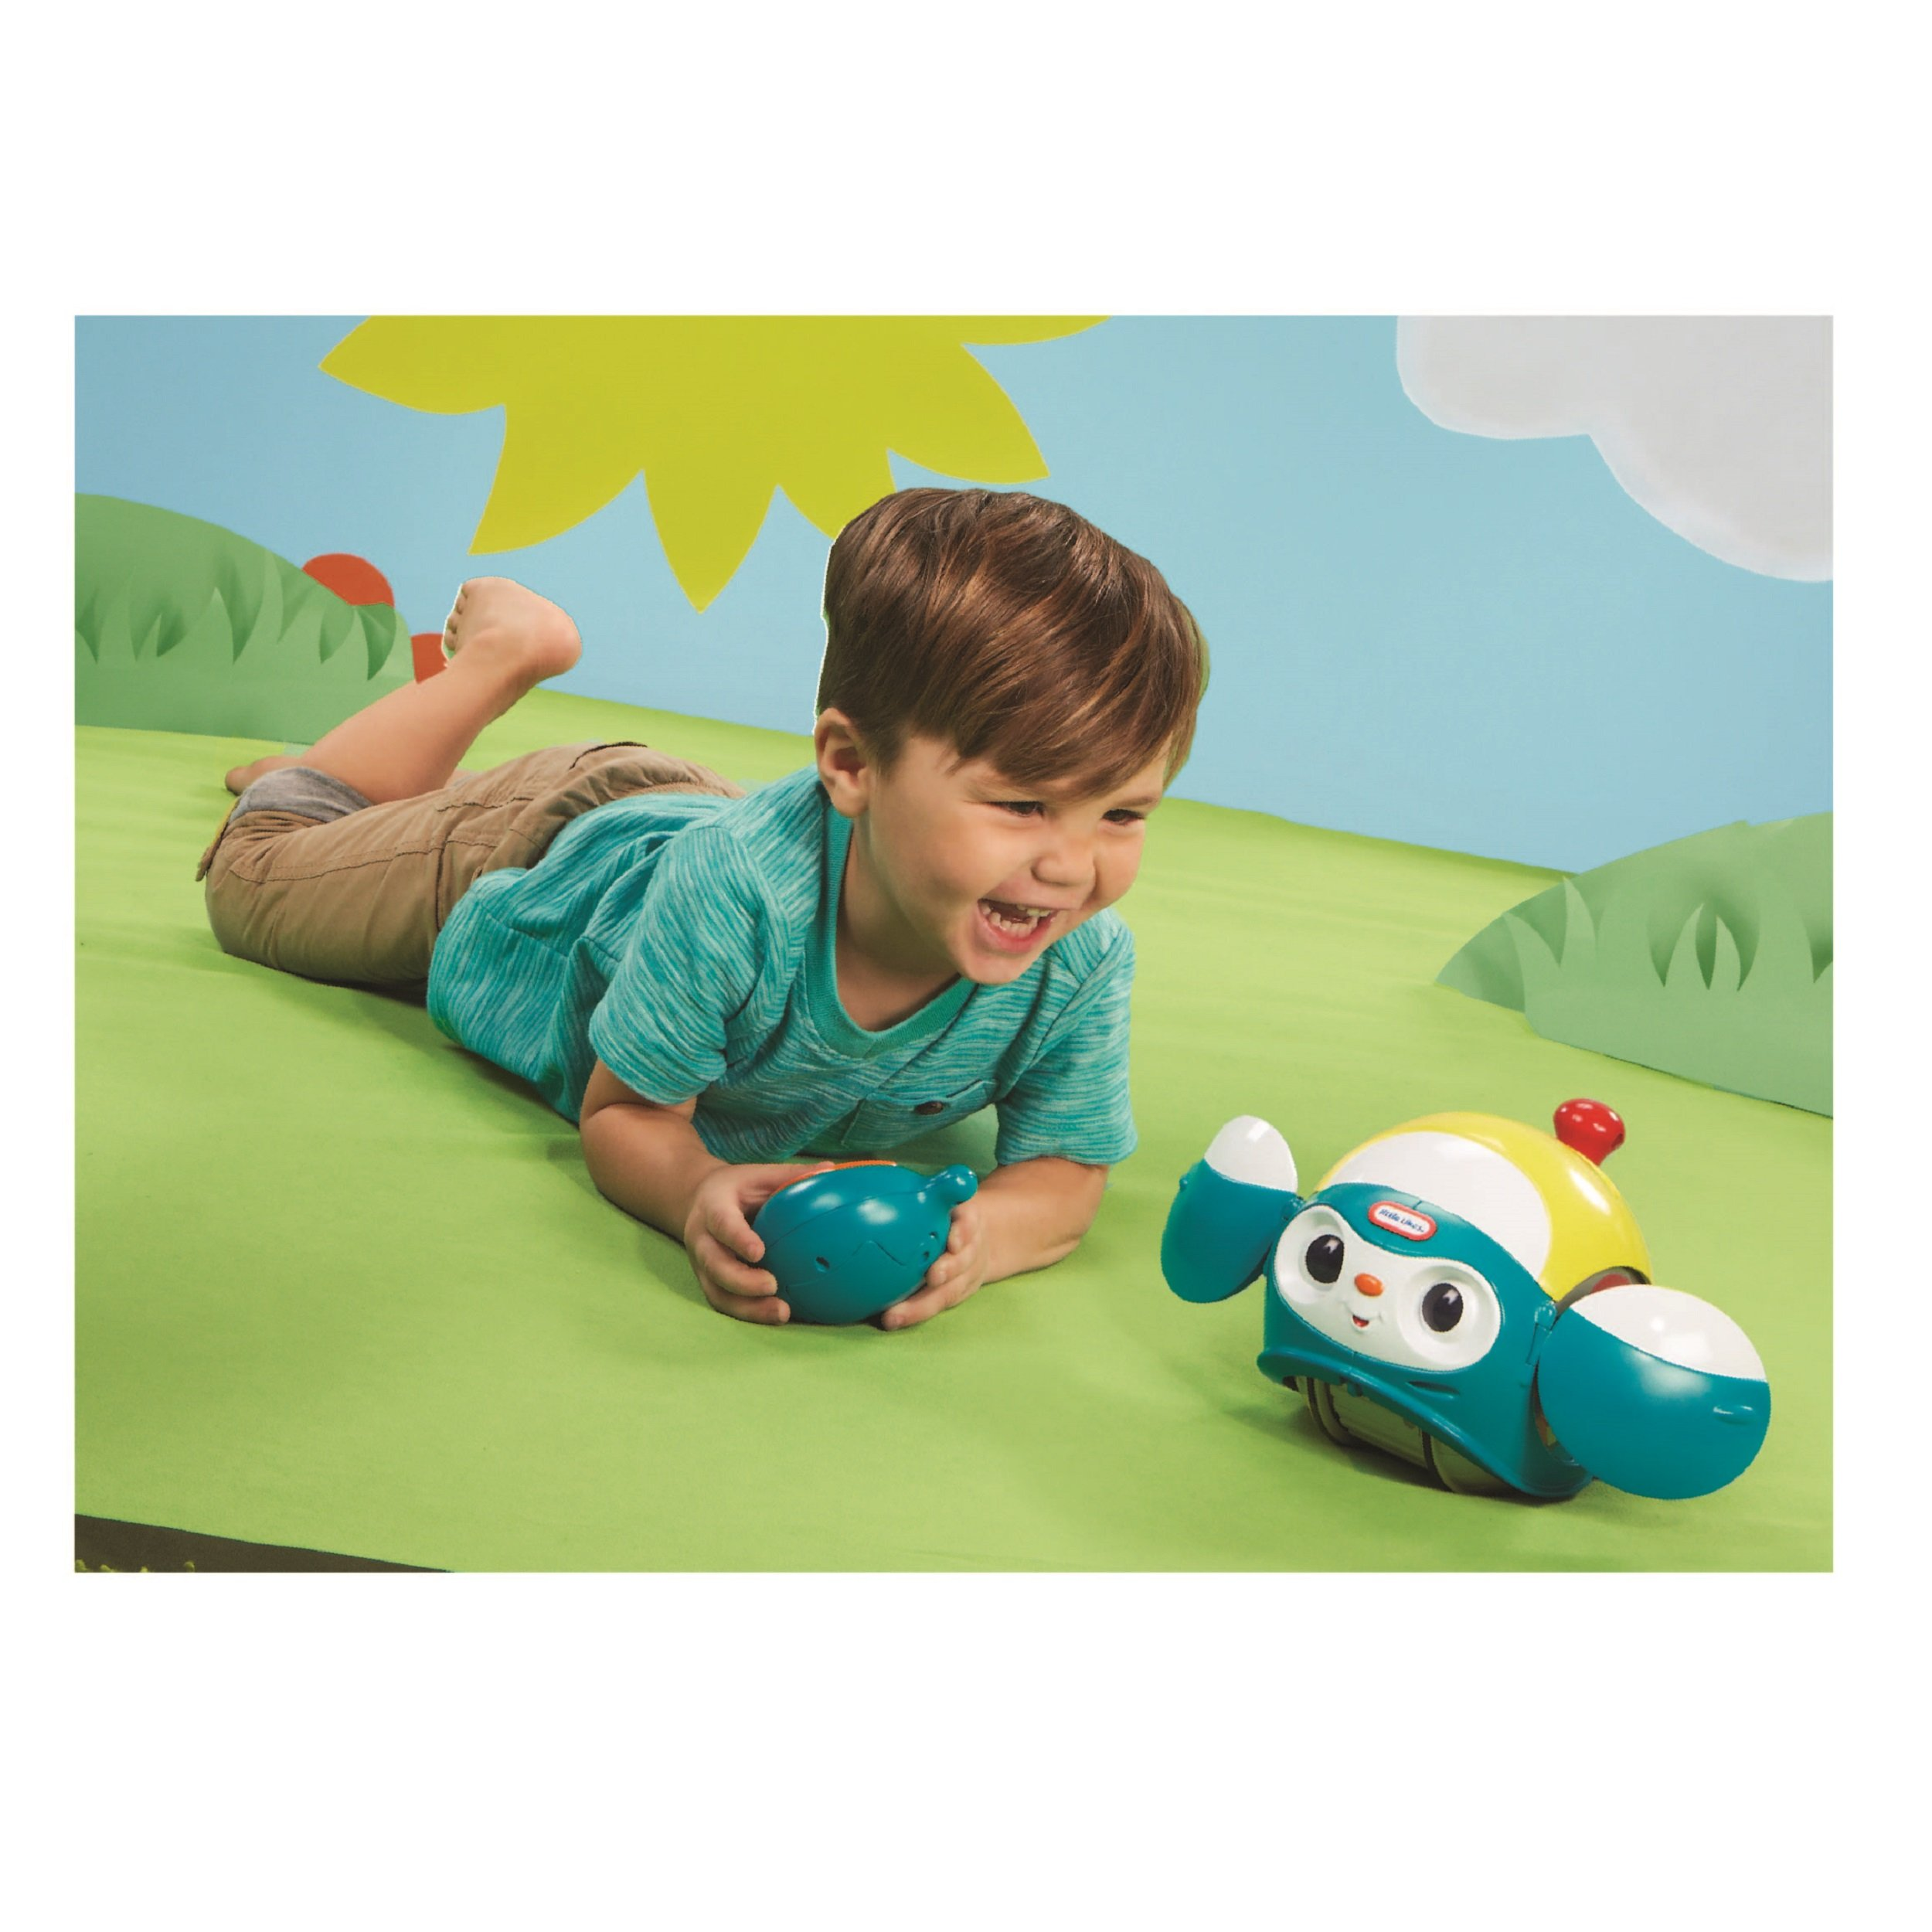 Little Tikes Spinning RC - Blue by Little Tikes (Image #3)